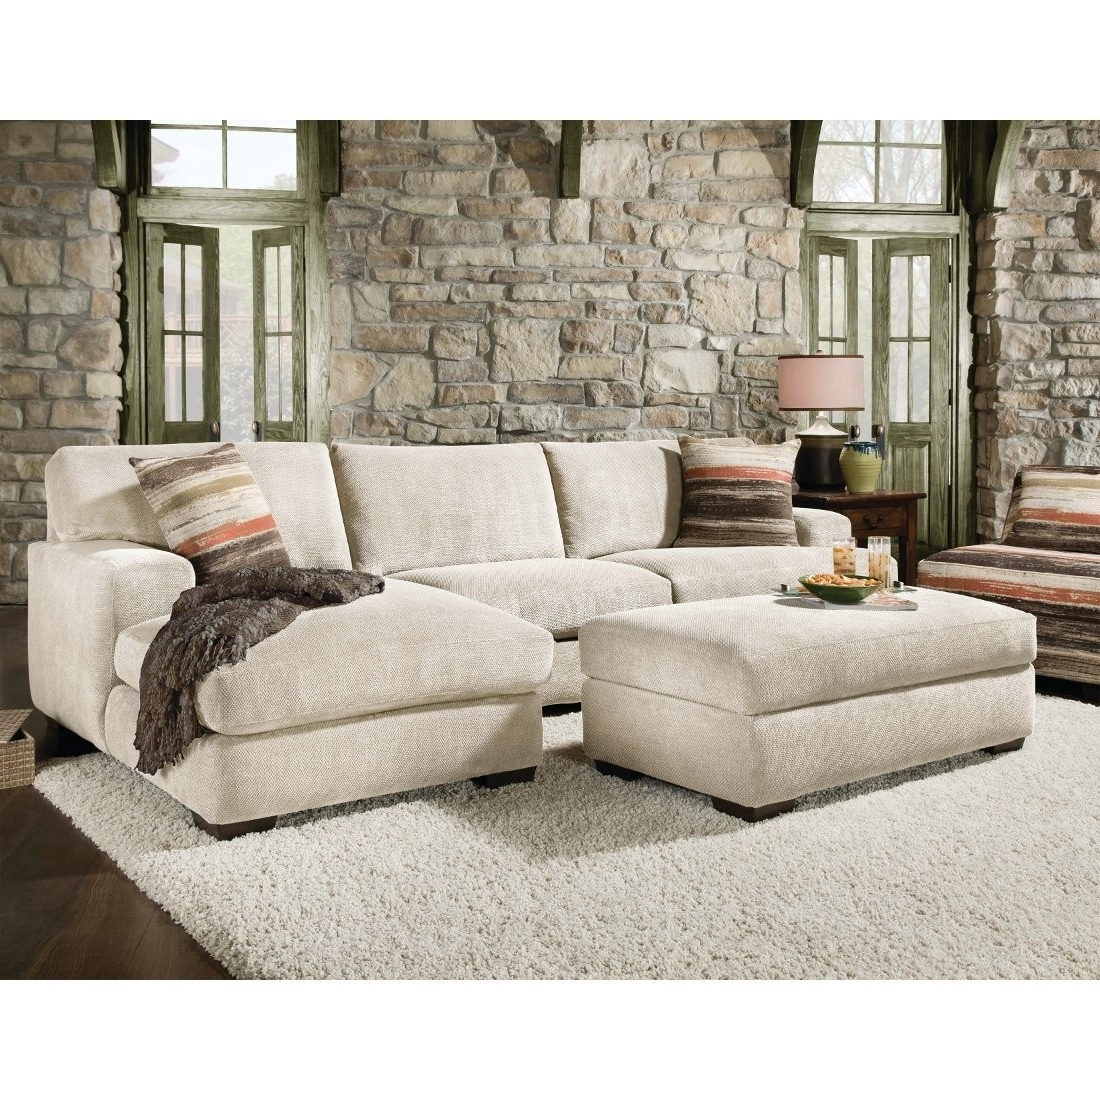 Conn's Pertaining To Trendy Chaise Lounge Sectional Sofas (View 8 of 15)